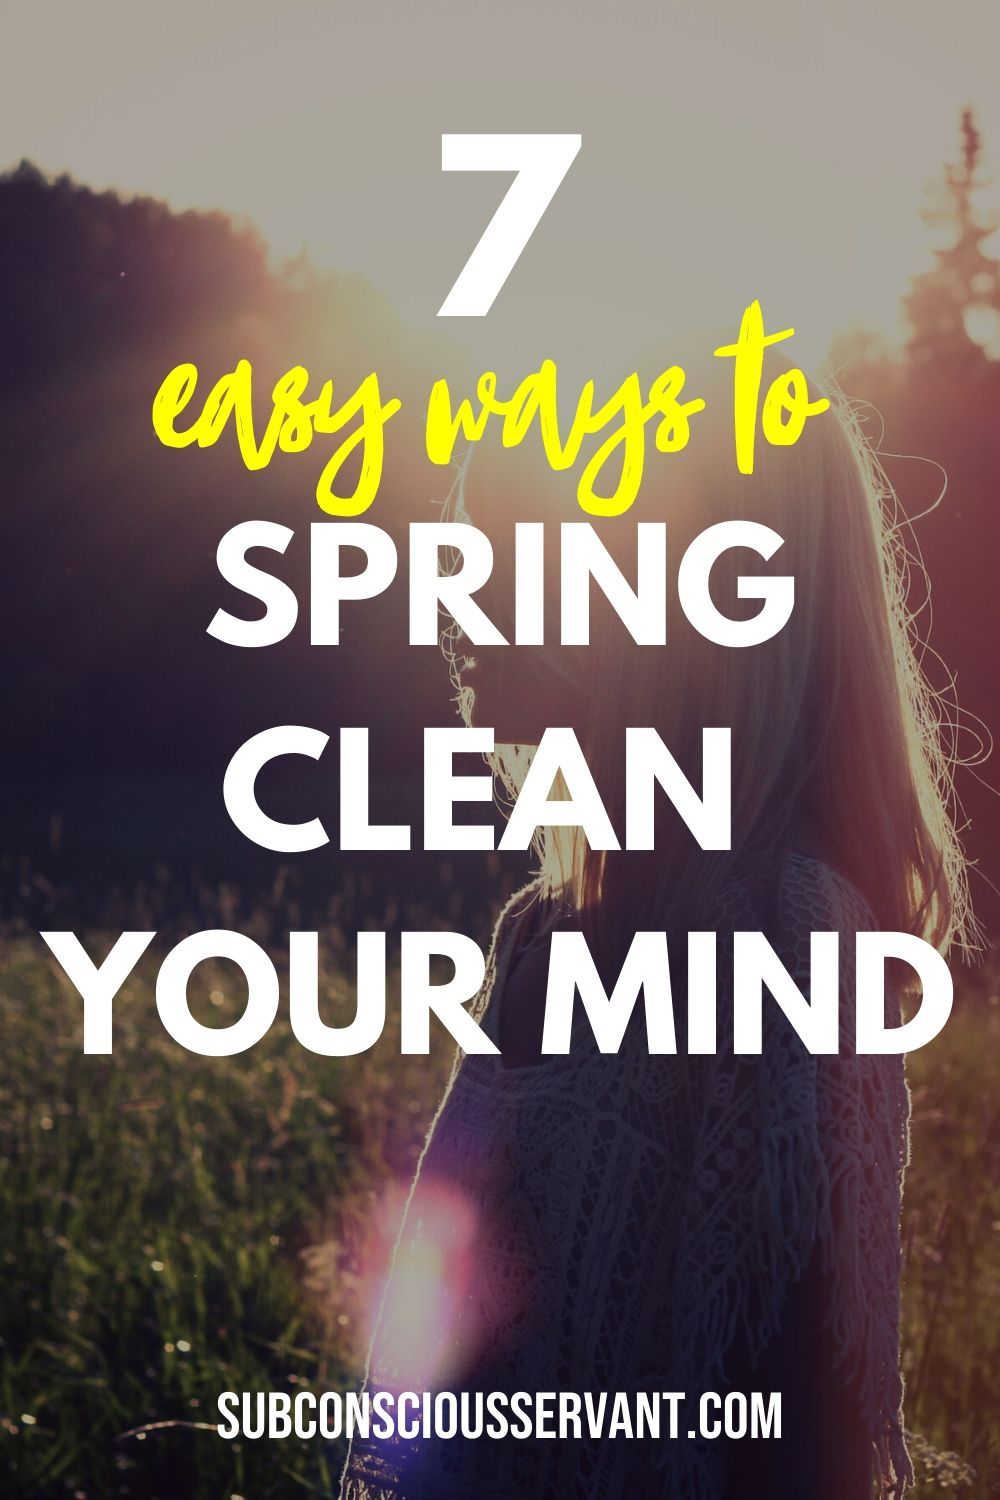 Here I have compiled a list of some great ways that you can spring clean your mind to increase your mental wellbeing and promote a mind space conducive to peace and happiness. Enjoy! #Mind #MentalHealth #Mindfulness